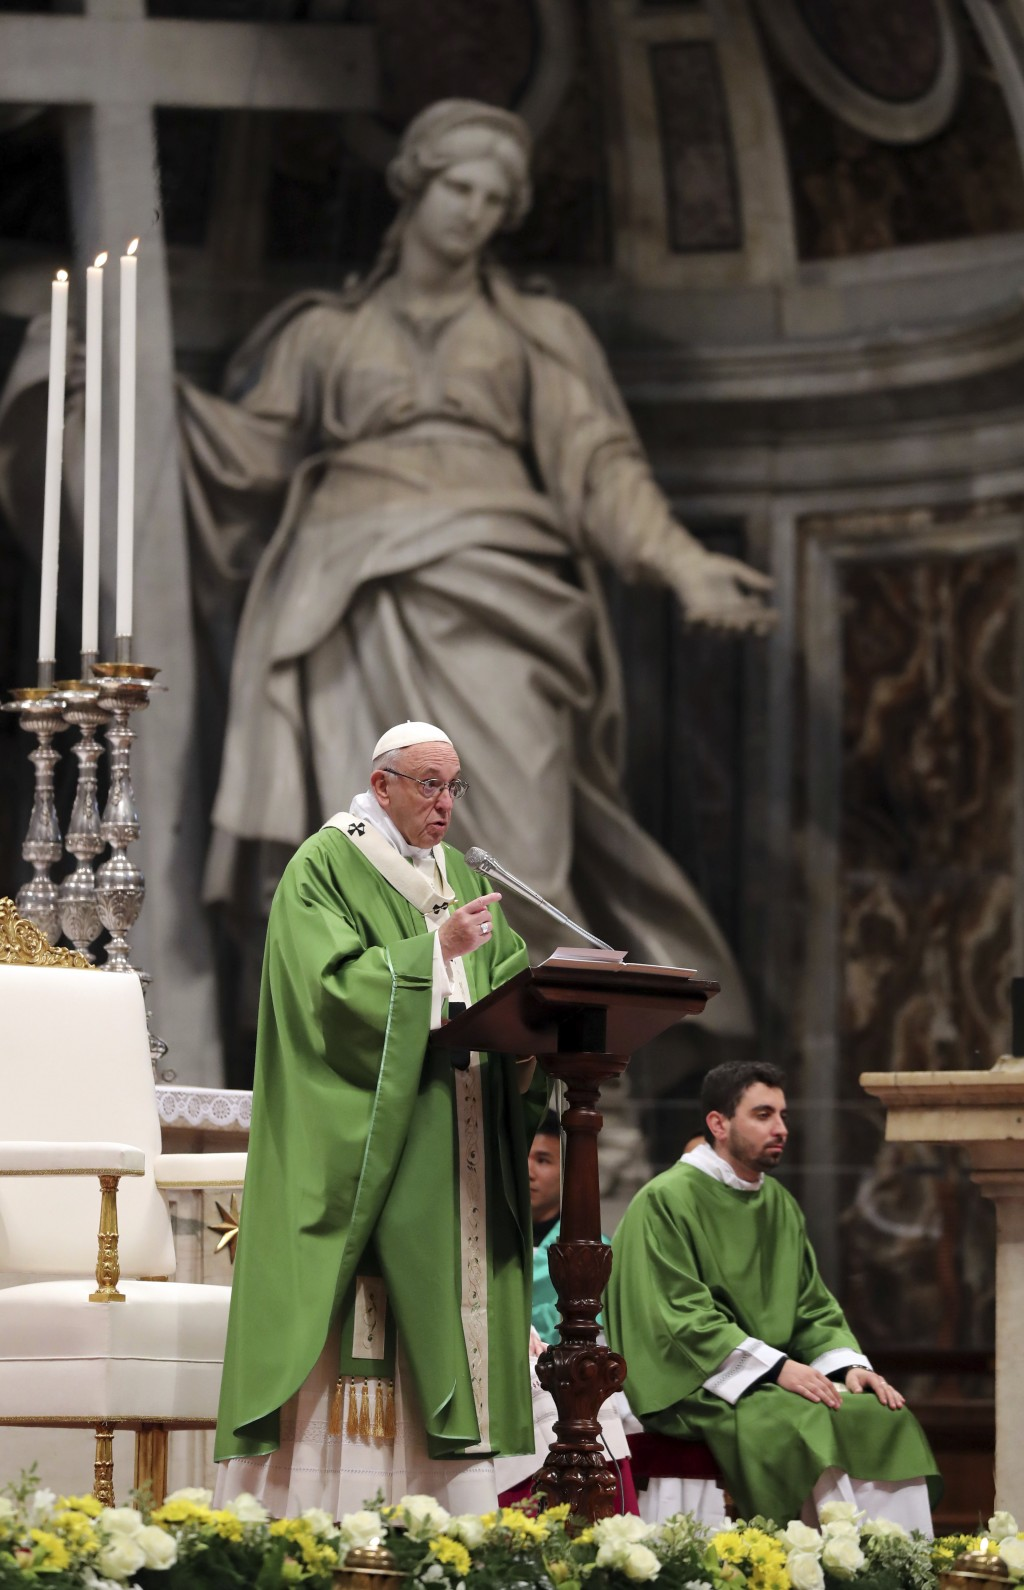 Pope Francis celebrates Mass on the occasion of the world day for migrants and refugees, in St. Peter's Basilica at the Vatican, Sunday, Jan. 14, 2018